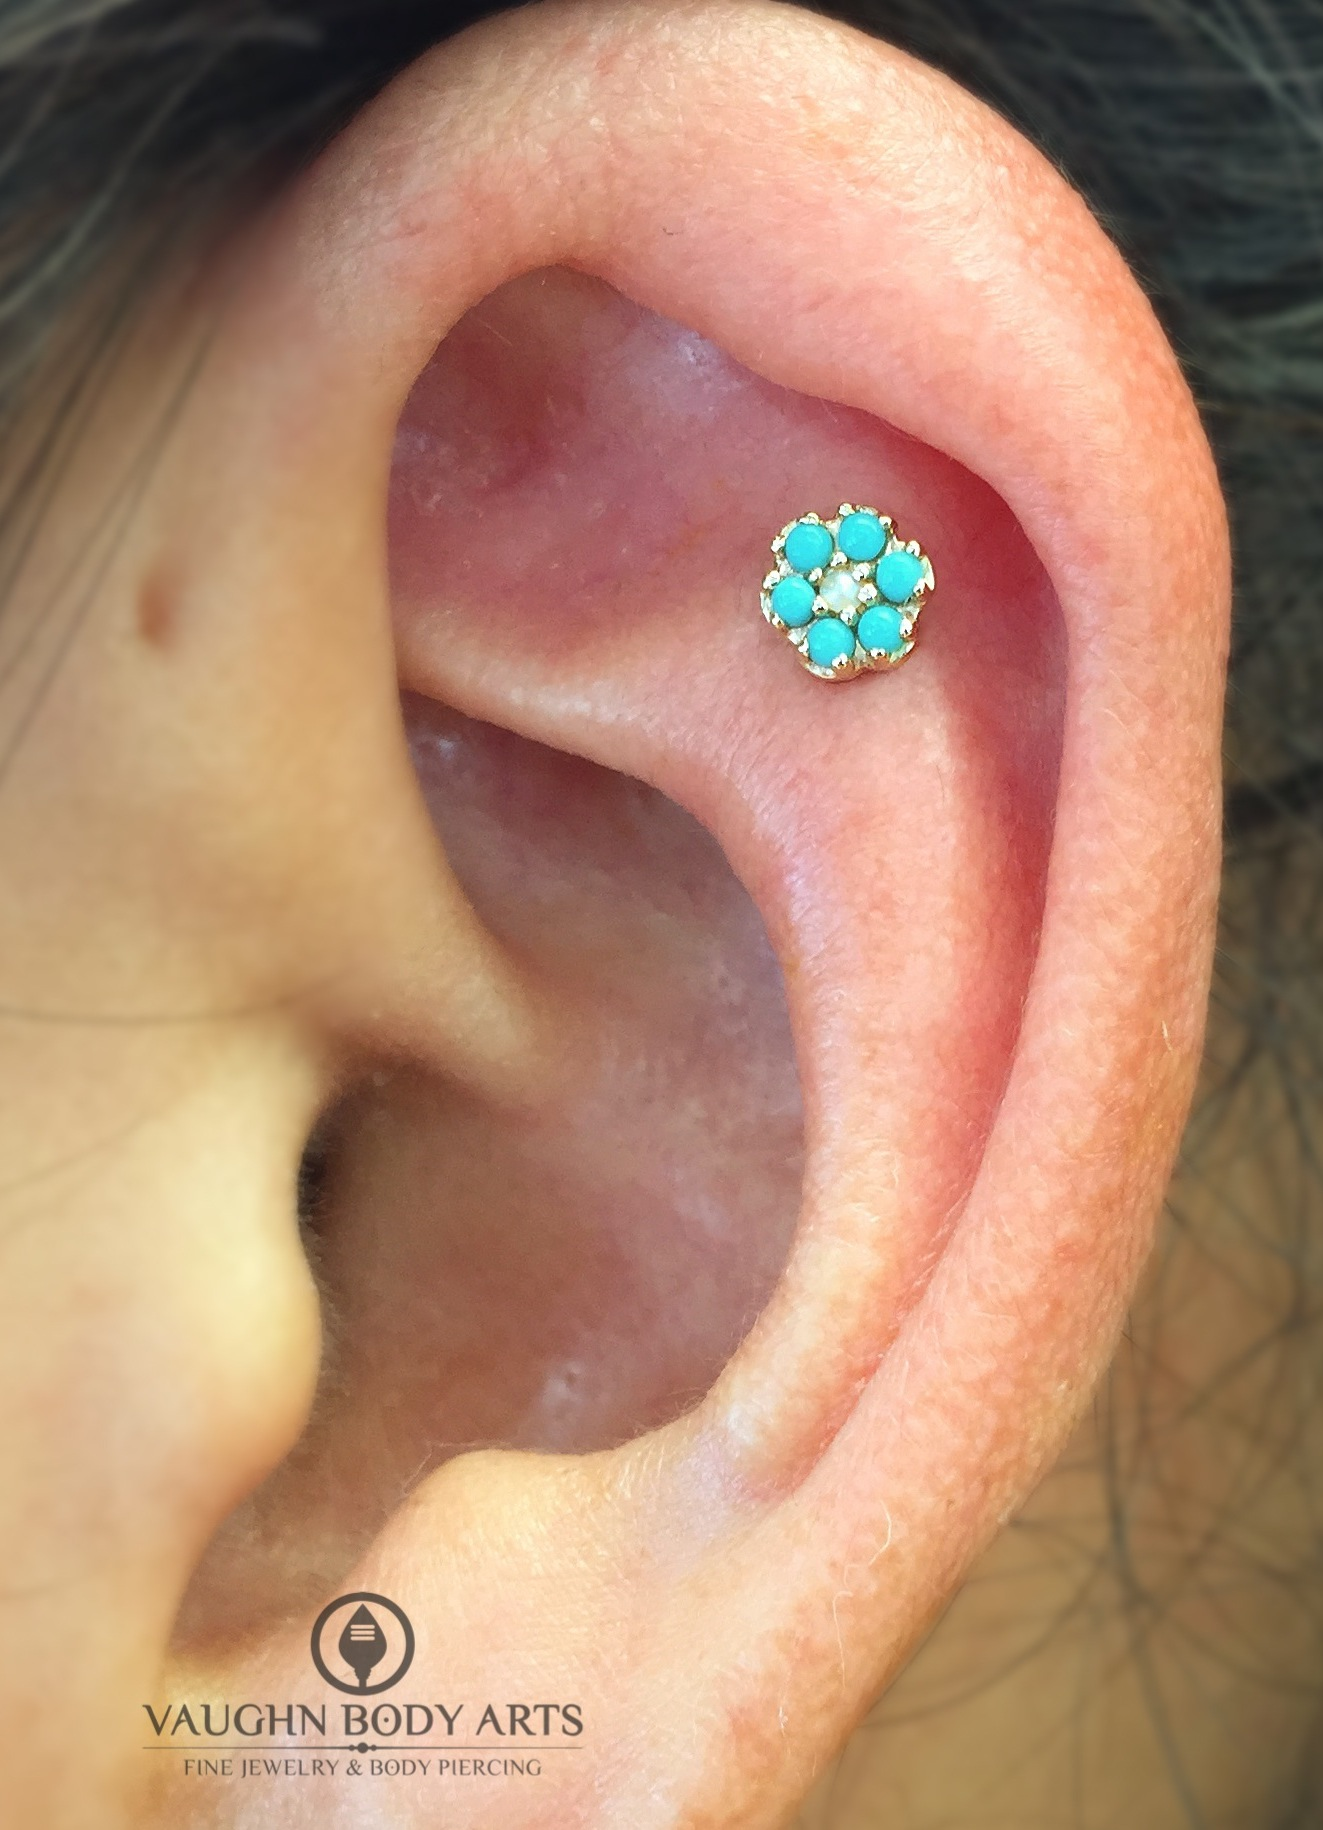 Helix piercing with a 14k yellow flower featuring turquoise and a genuine pearl from BVLA.